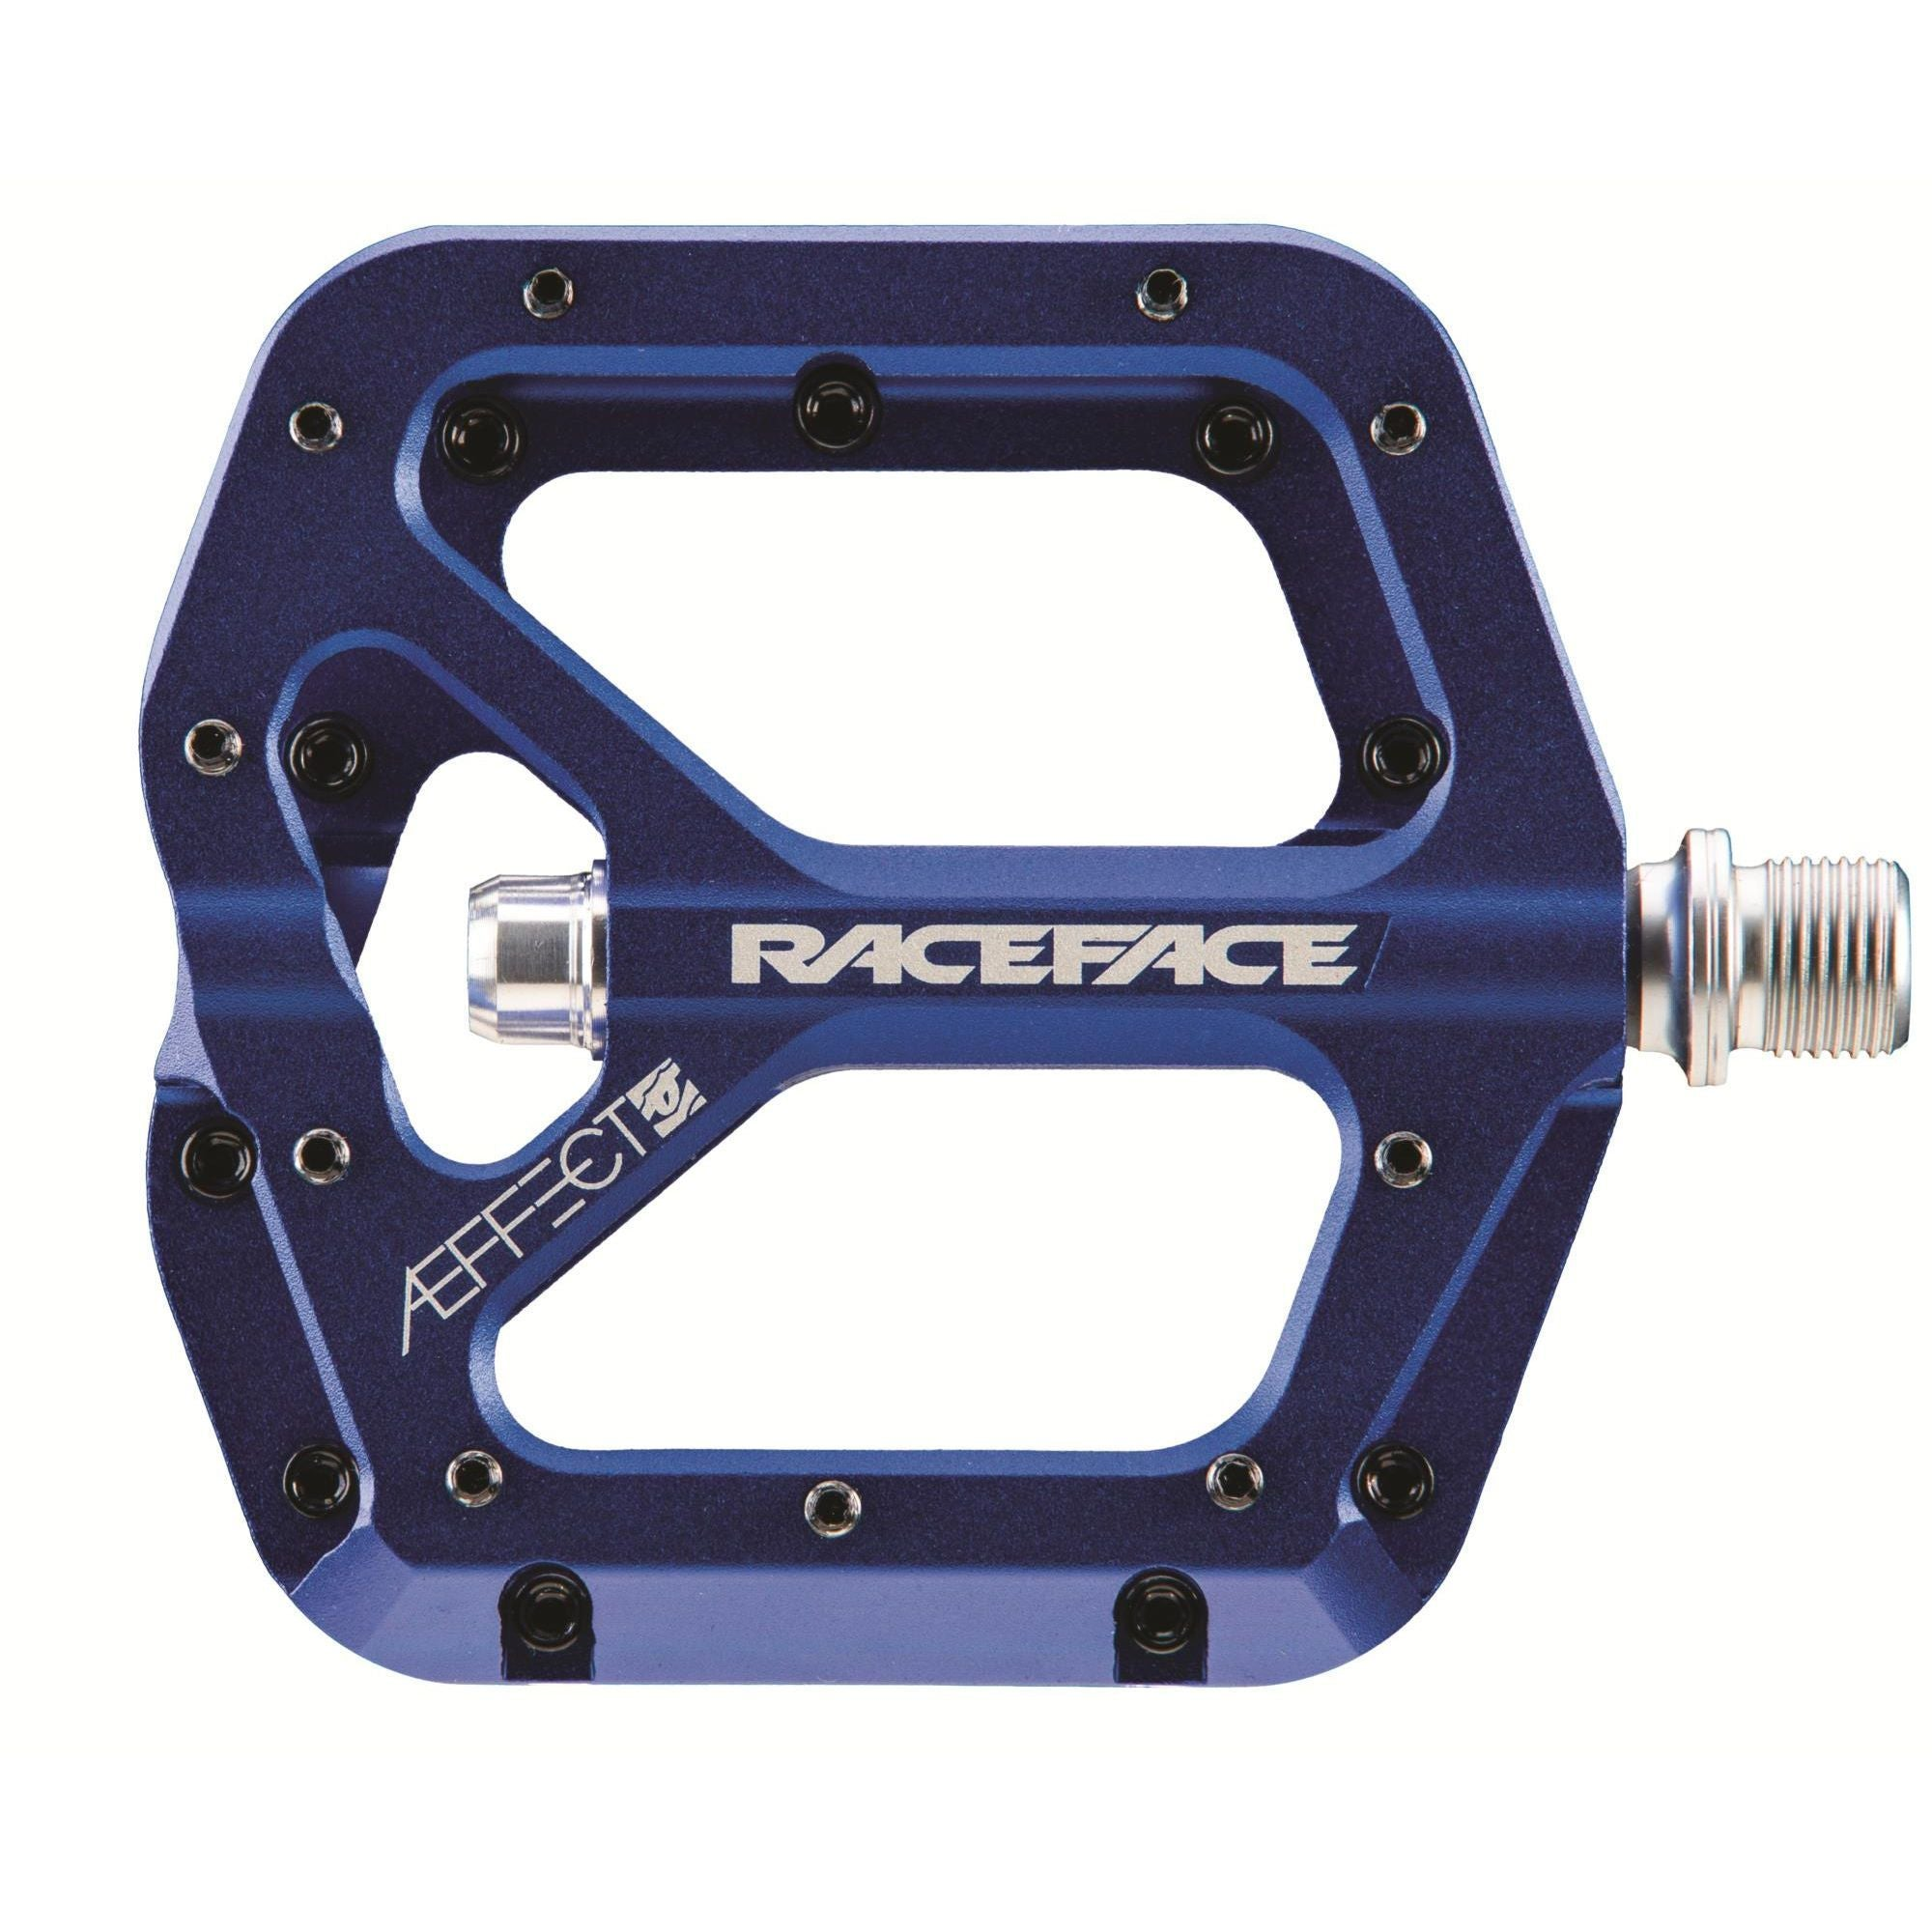 Race Face Components > Pedals & Pedal Cleats Blue Race Face Aeffect Pedal